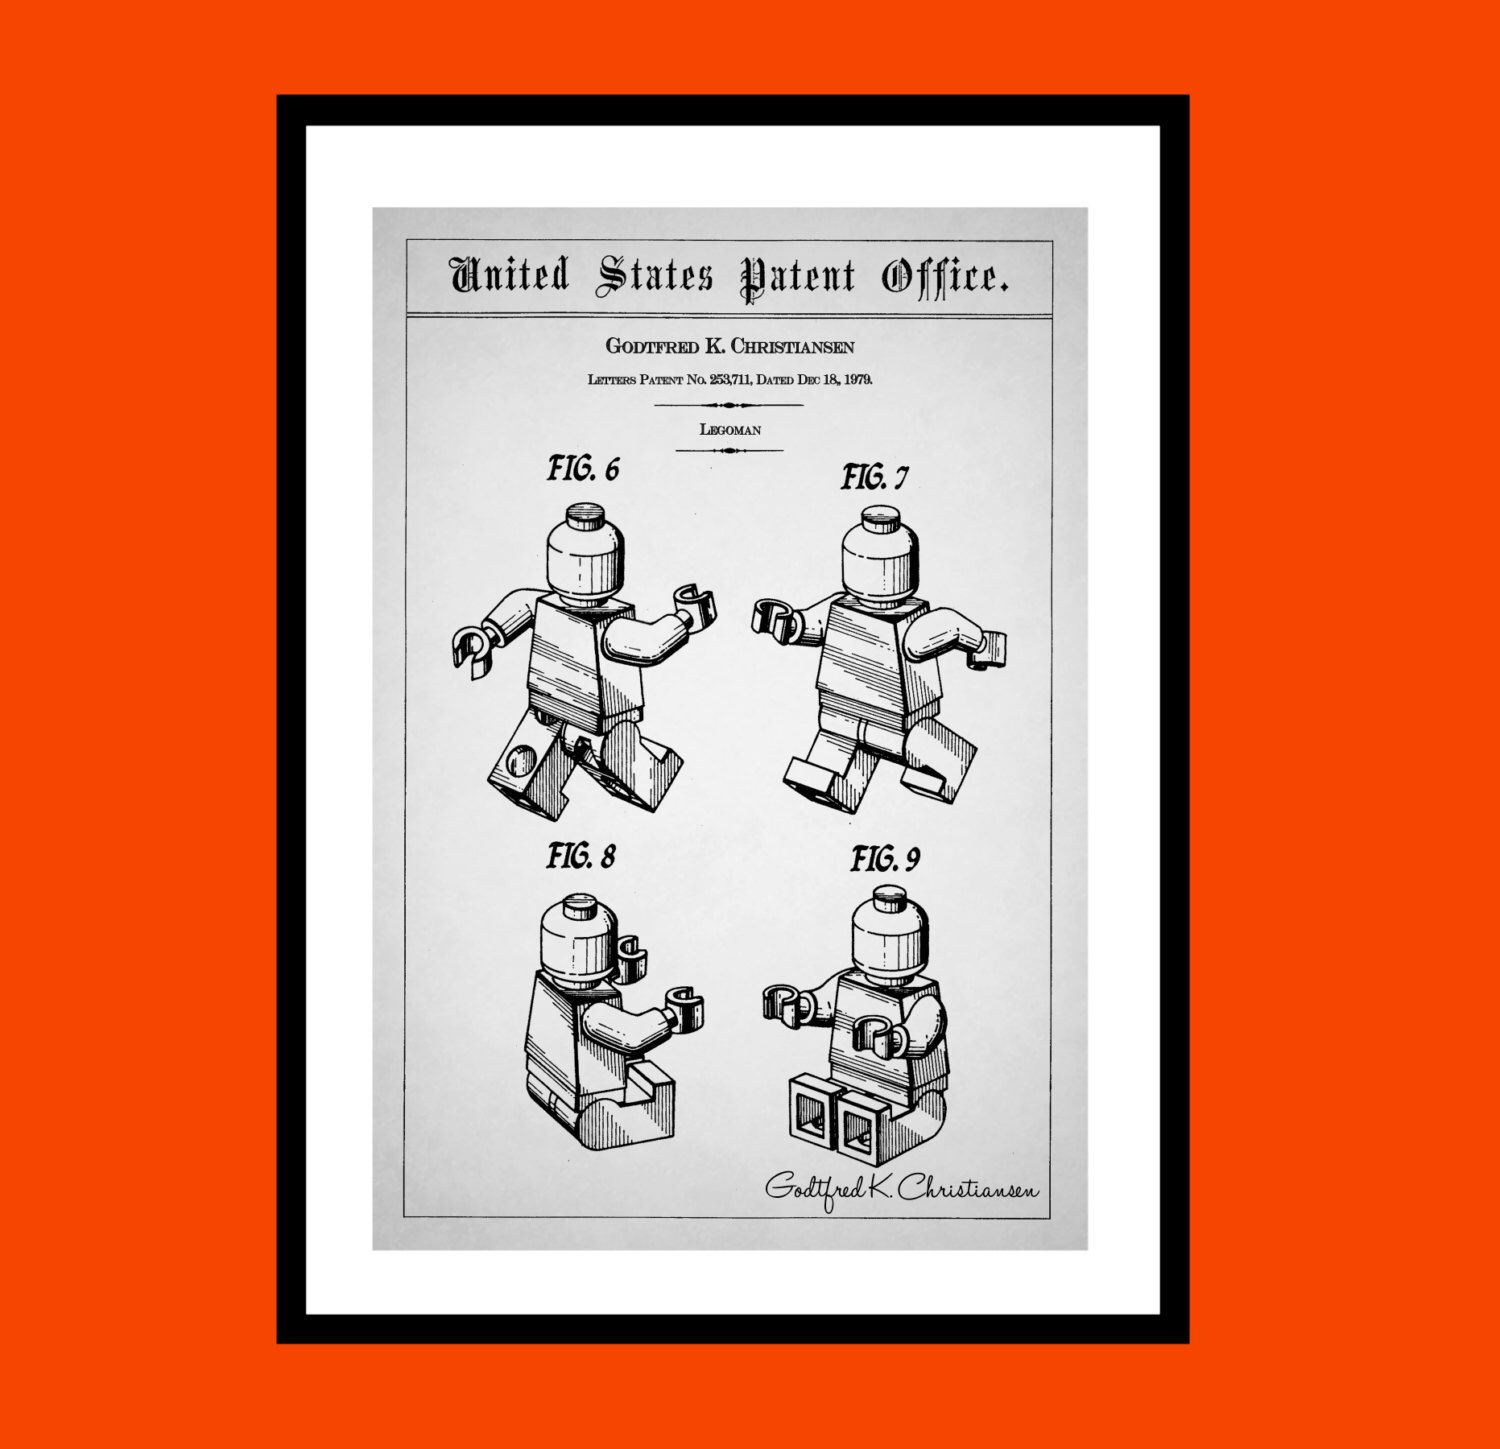 Lego poster lego patent lego print lego art lego blueprint lego lego poster lego patent lego print lego art lego blueprint lego malvernweather Image collections